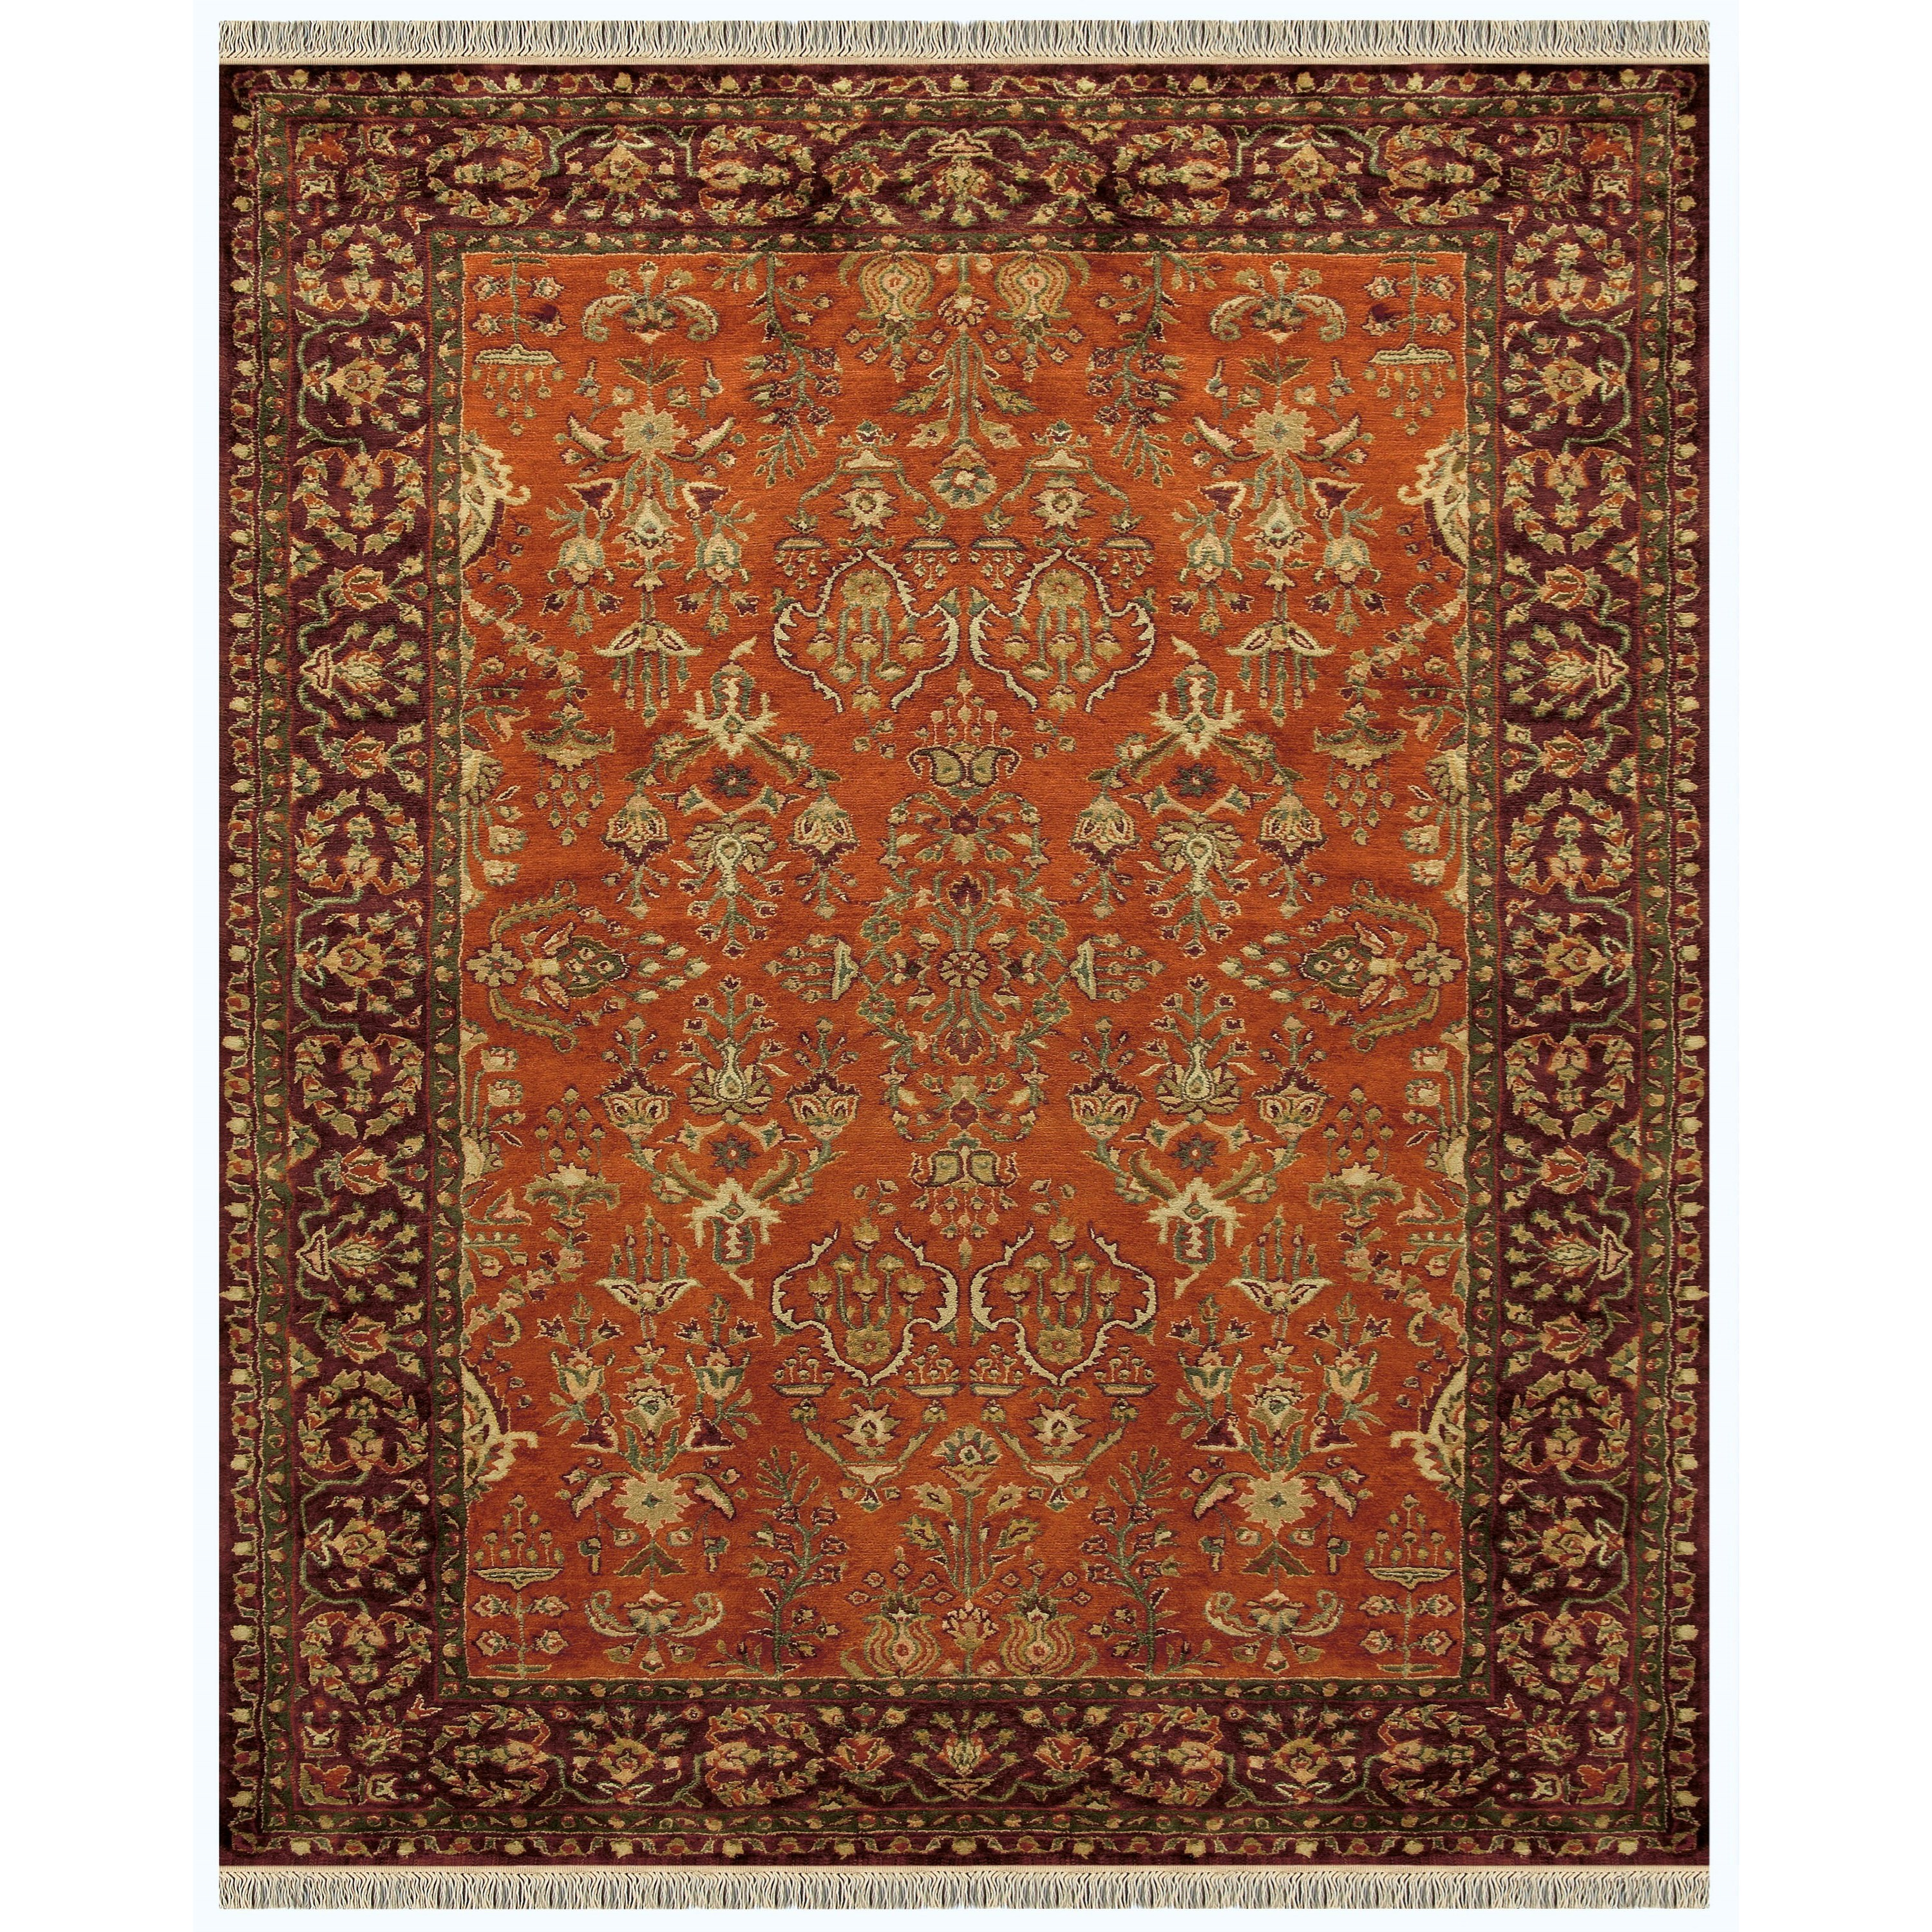 Amore Cinnamon/Plum 2' x 3' Area Rug by Feizy Rugs at Sprintz Furniture